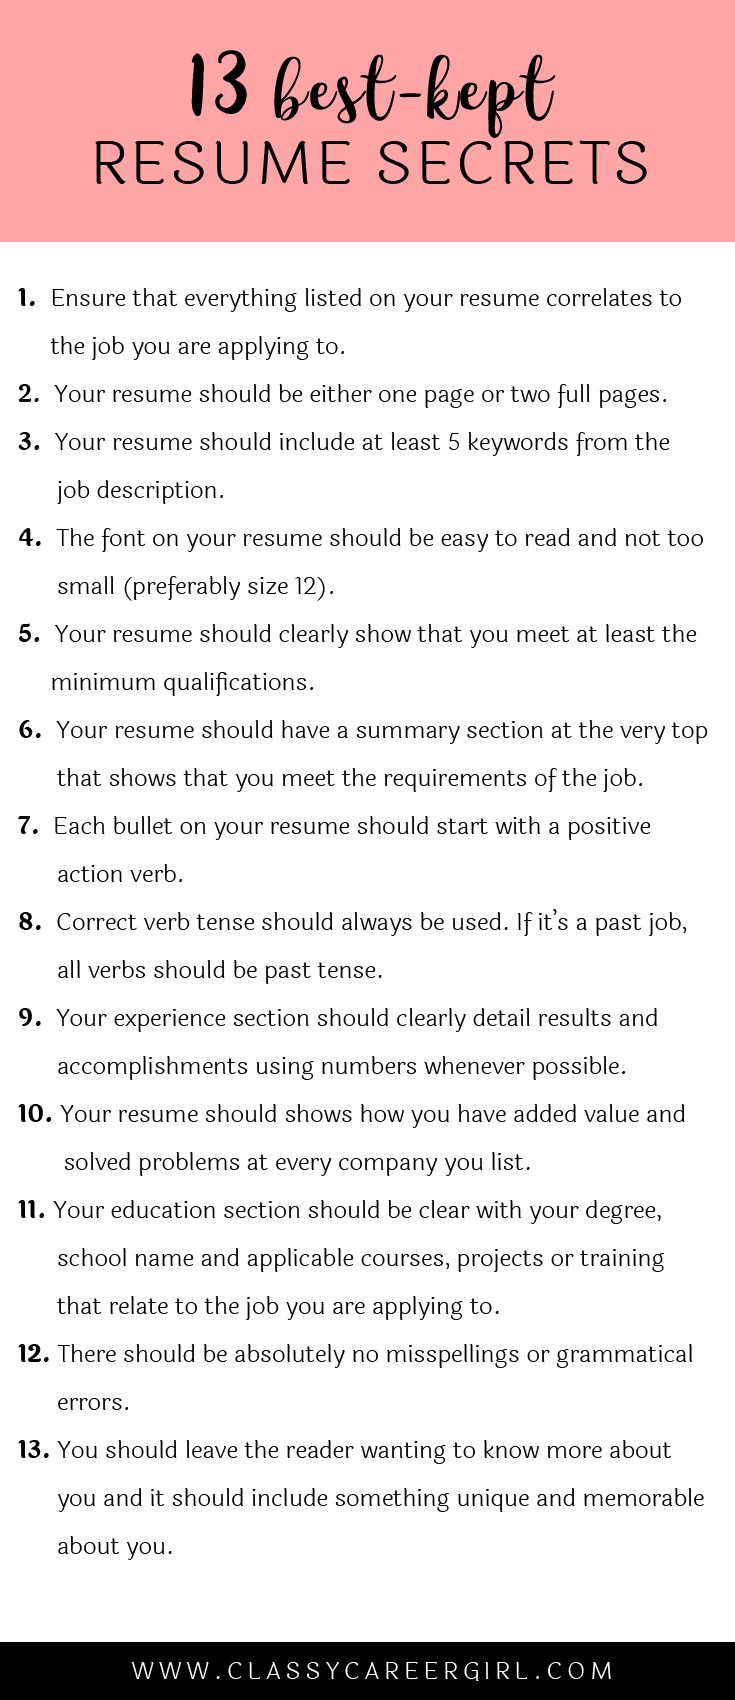 Picnictoimpeachus  Marvelous  Ideas About Resume On Pinterest  Cv Format Resume Cv And  With Exciting Some Hiring Managers Will Toss Your Resume Out If You Dont Know These  With Adorable Resume Samples Customer Service Also Word Resume Templates Free In Addition Follow Up Email After Submitting Resume And Sample Resume For Receptionist As Well As Killer Resume Additionally Resume Letter Examples From Pinterestcom With Picnictoimpeachus  Exciting  Ideas About Resume On Pinterest  Cv Format Resume Cv And  With Adorable Some Hiring Managers Will Toss Your Resume Out If You Dont Know These  And Marvelous Resume Samples Customer Service Also Word Resume Templates Free In Addition Follow Up Email After Submitting Resume From Pinterestcom